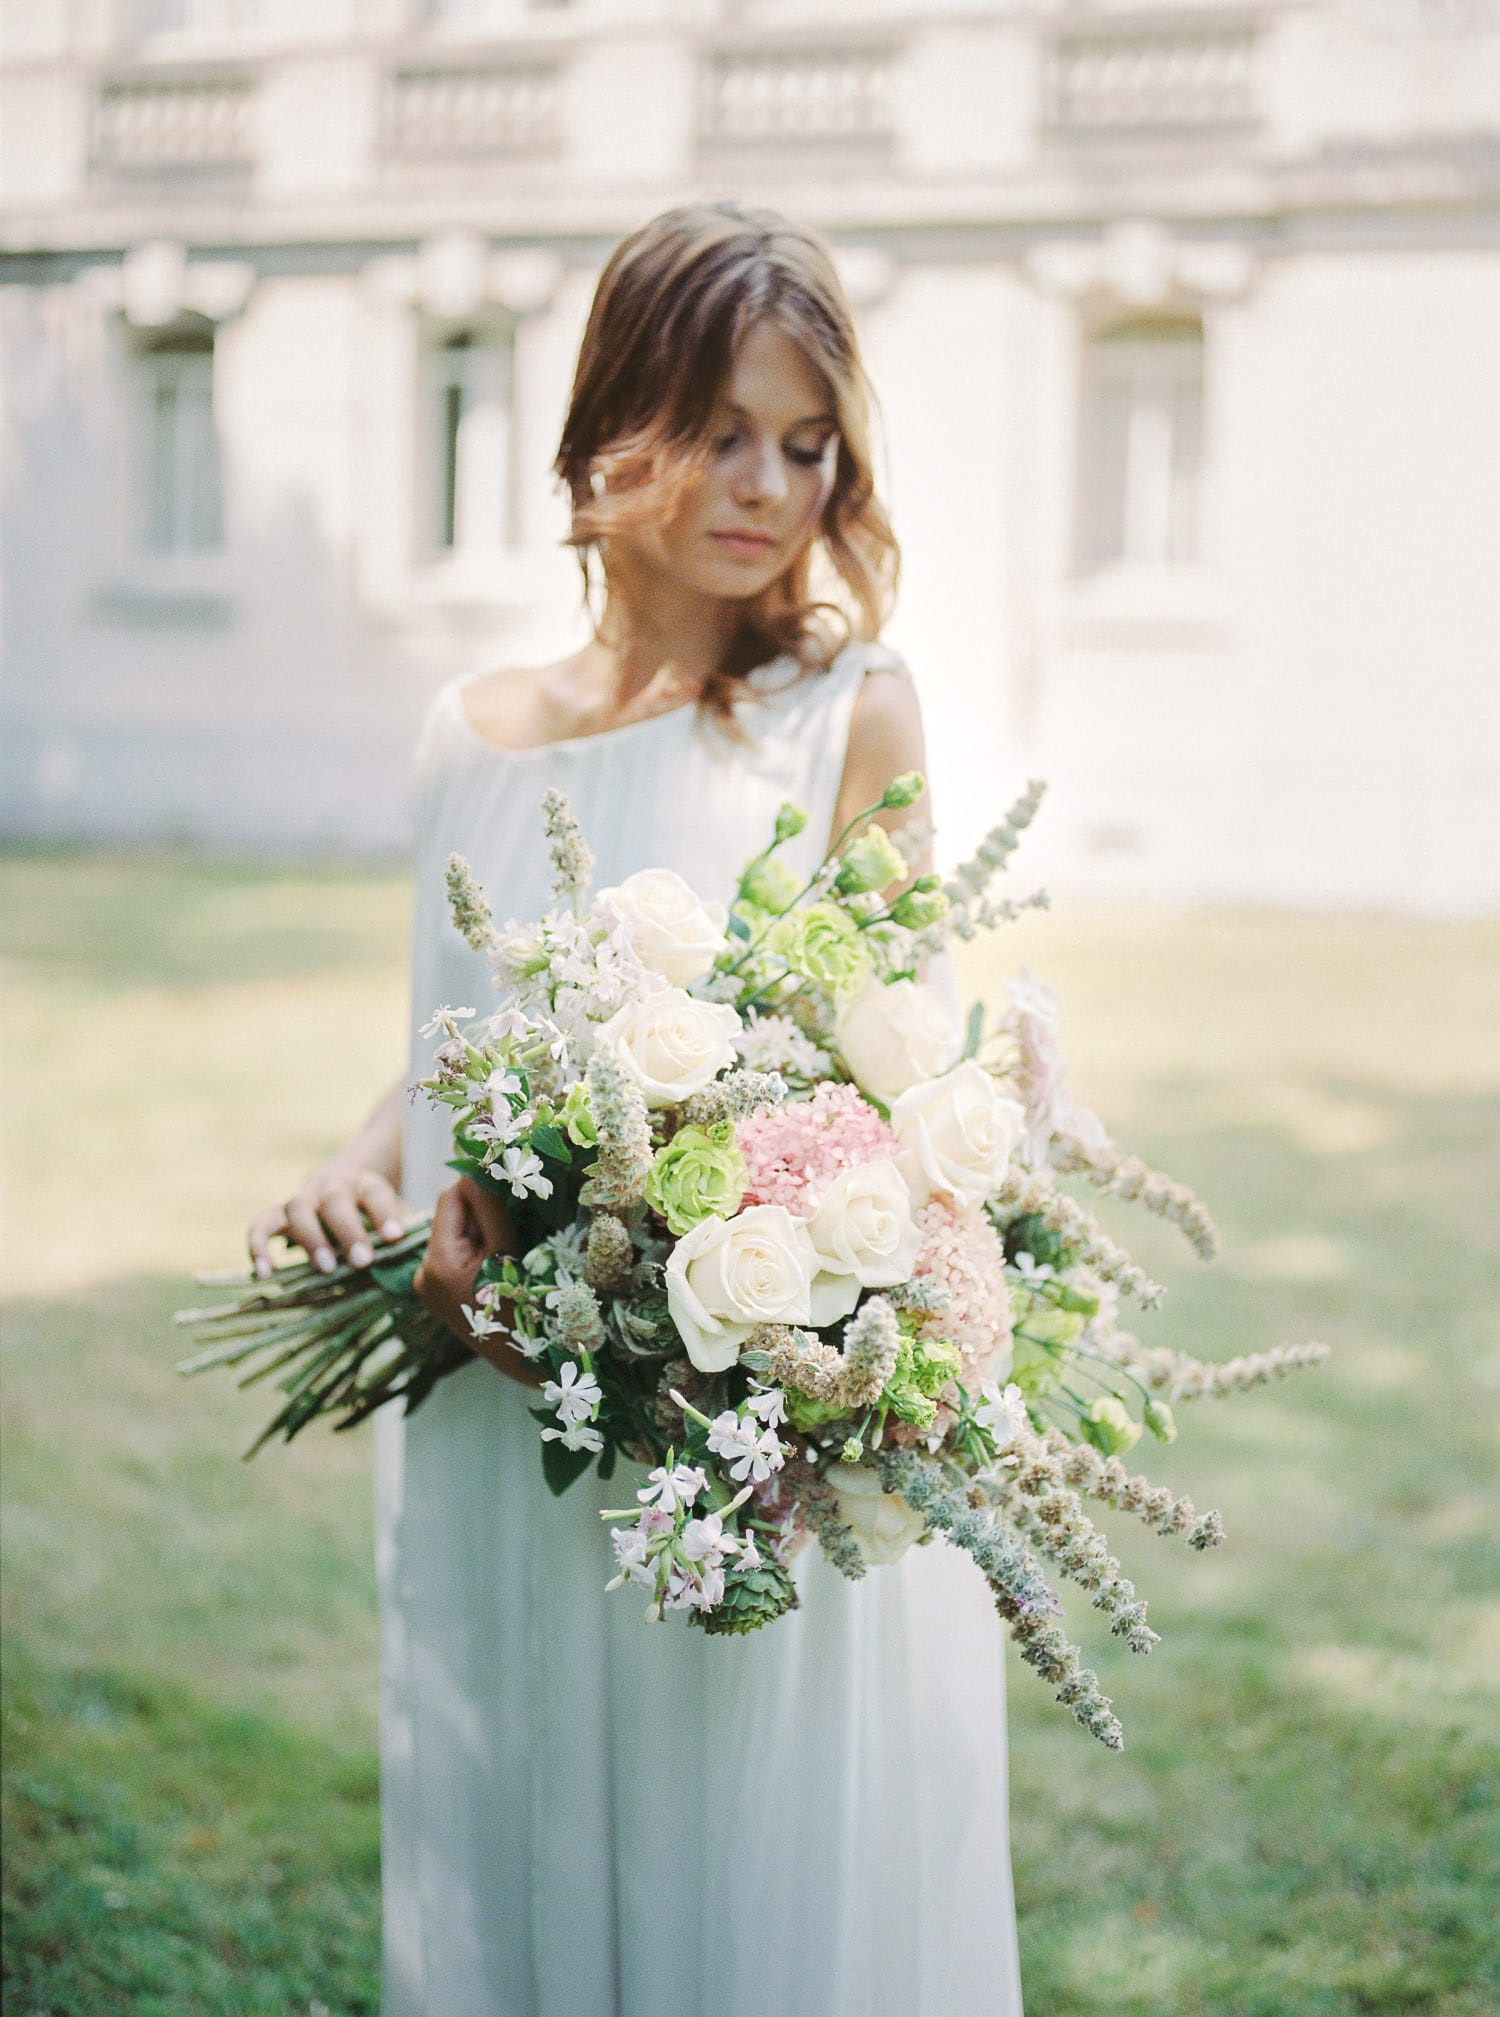 Bride, elegant bride, pink blush bouquet